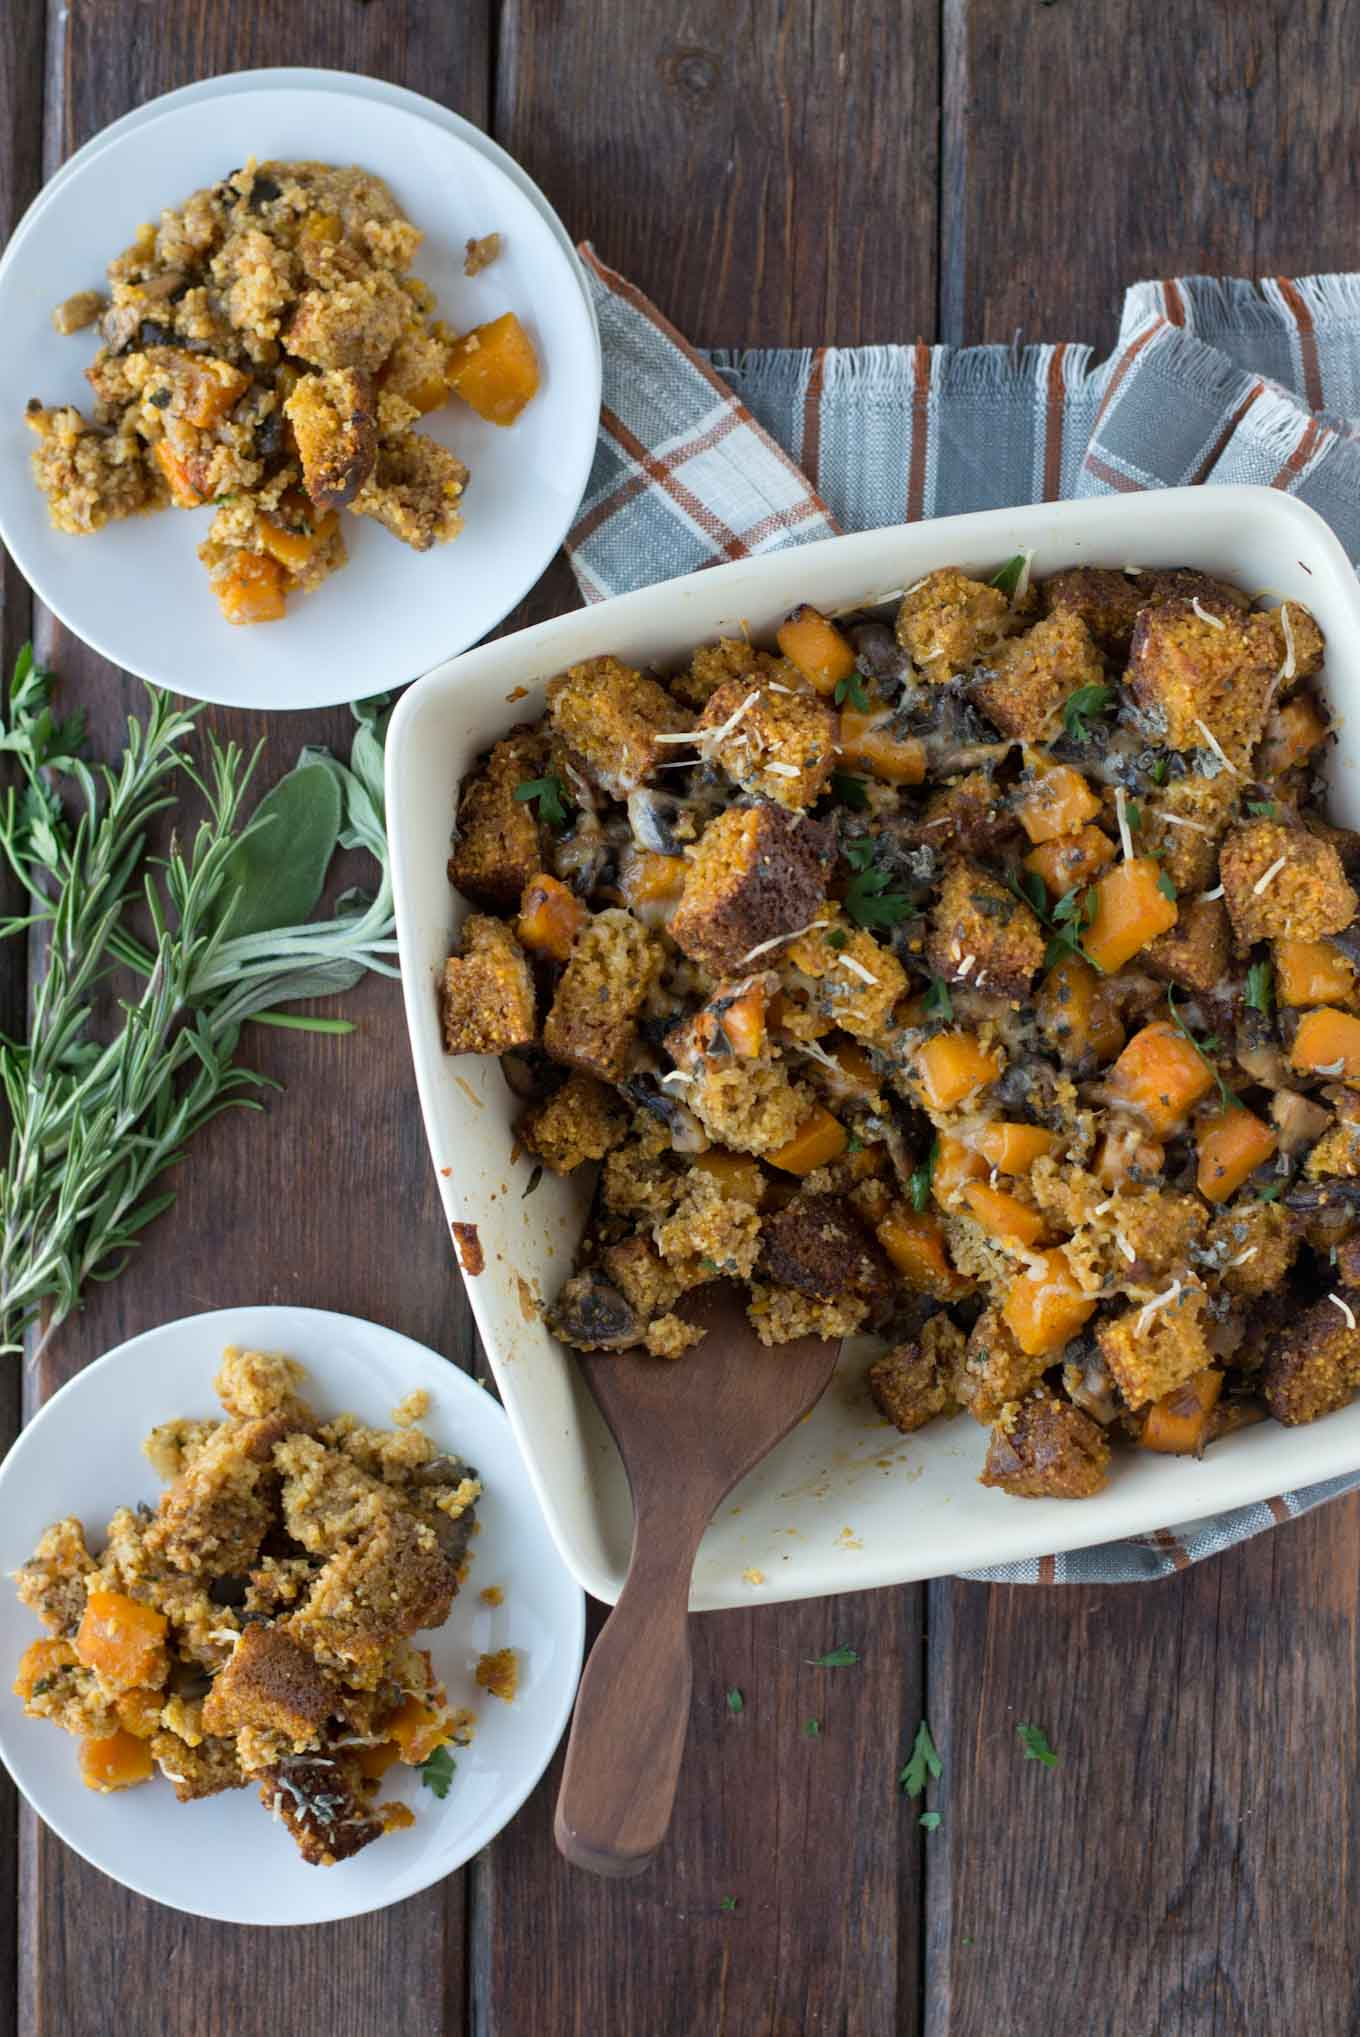 Fear Stuffing no more, check out this healthy and quick stuffing recipe that packs a big punch.